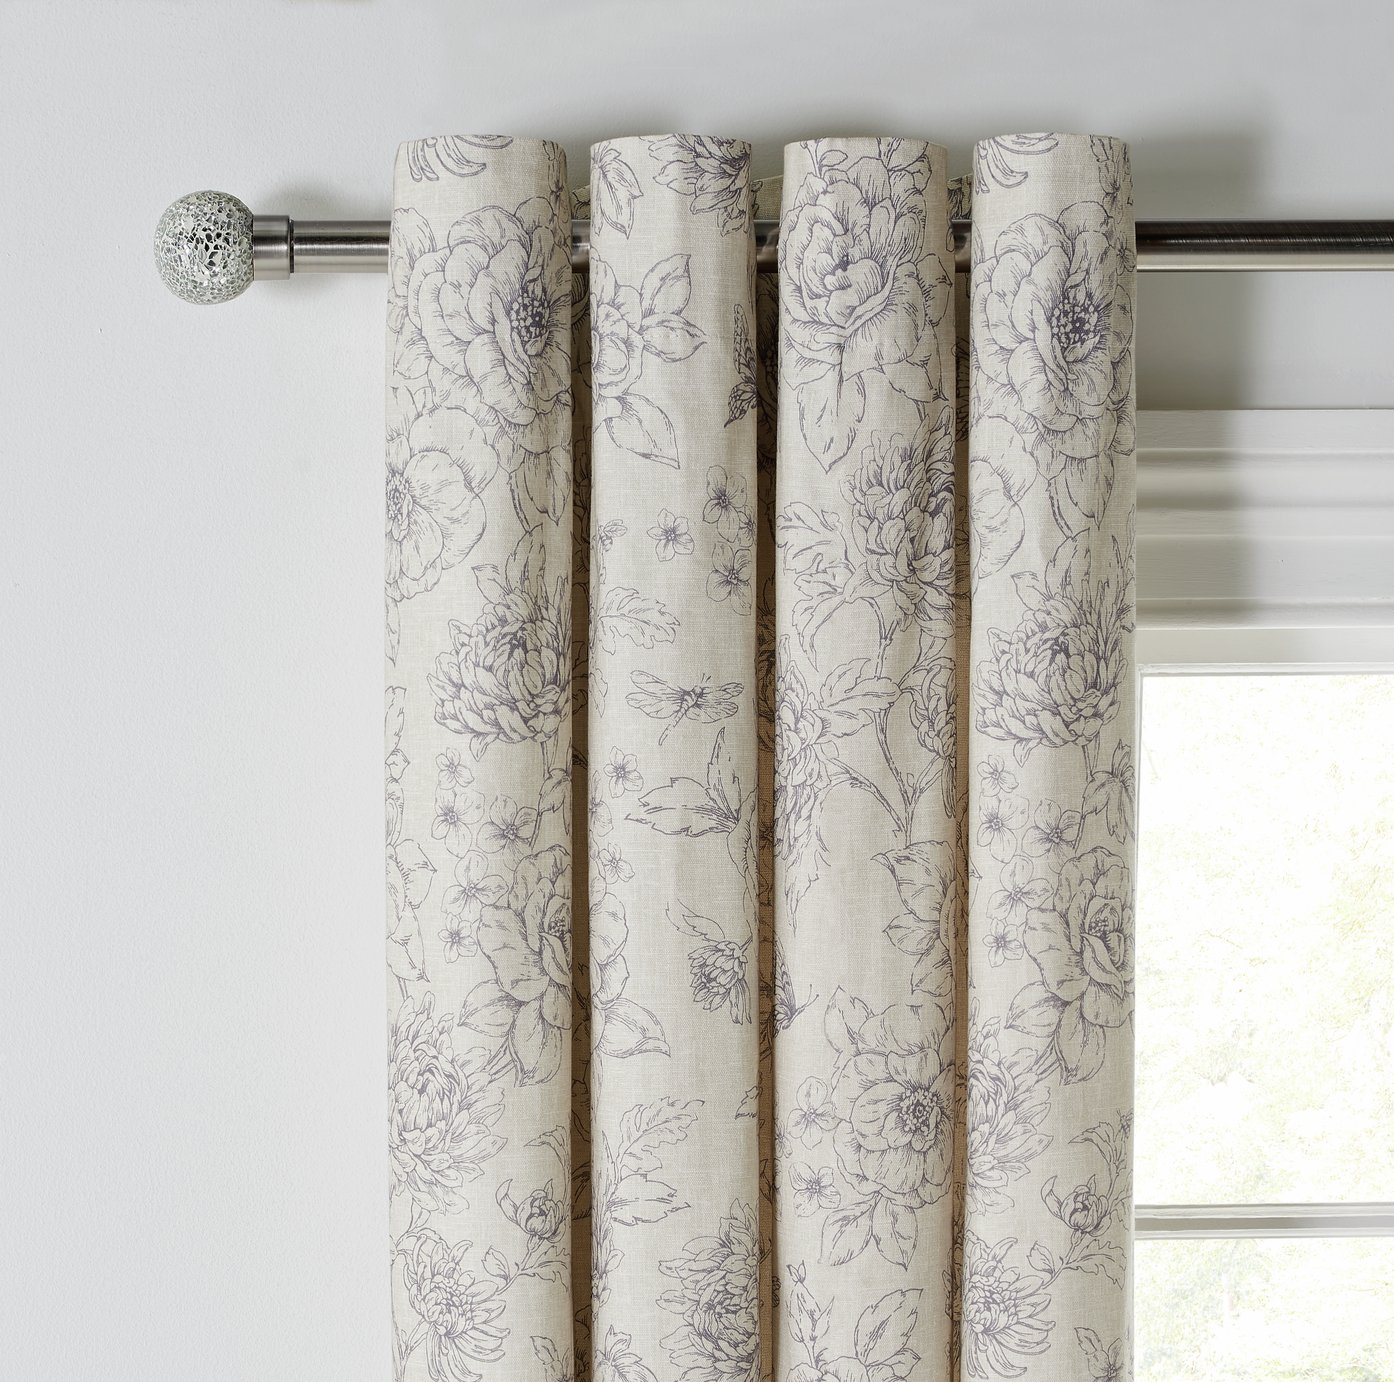 Argos Home Grace Lined Curtains 117x137cm - Grey